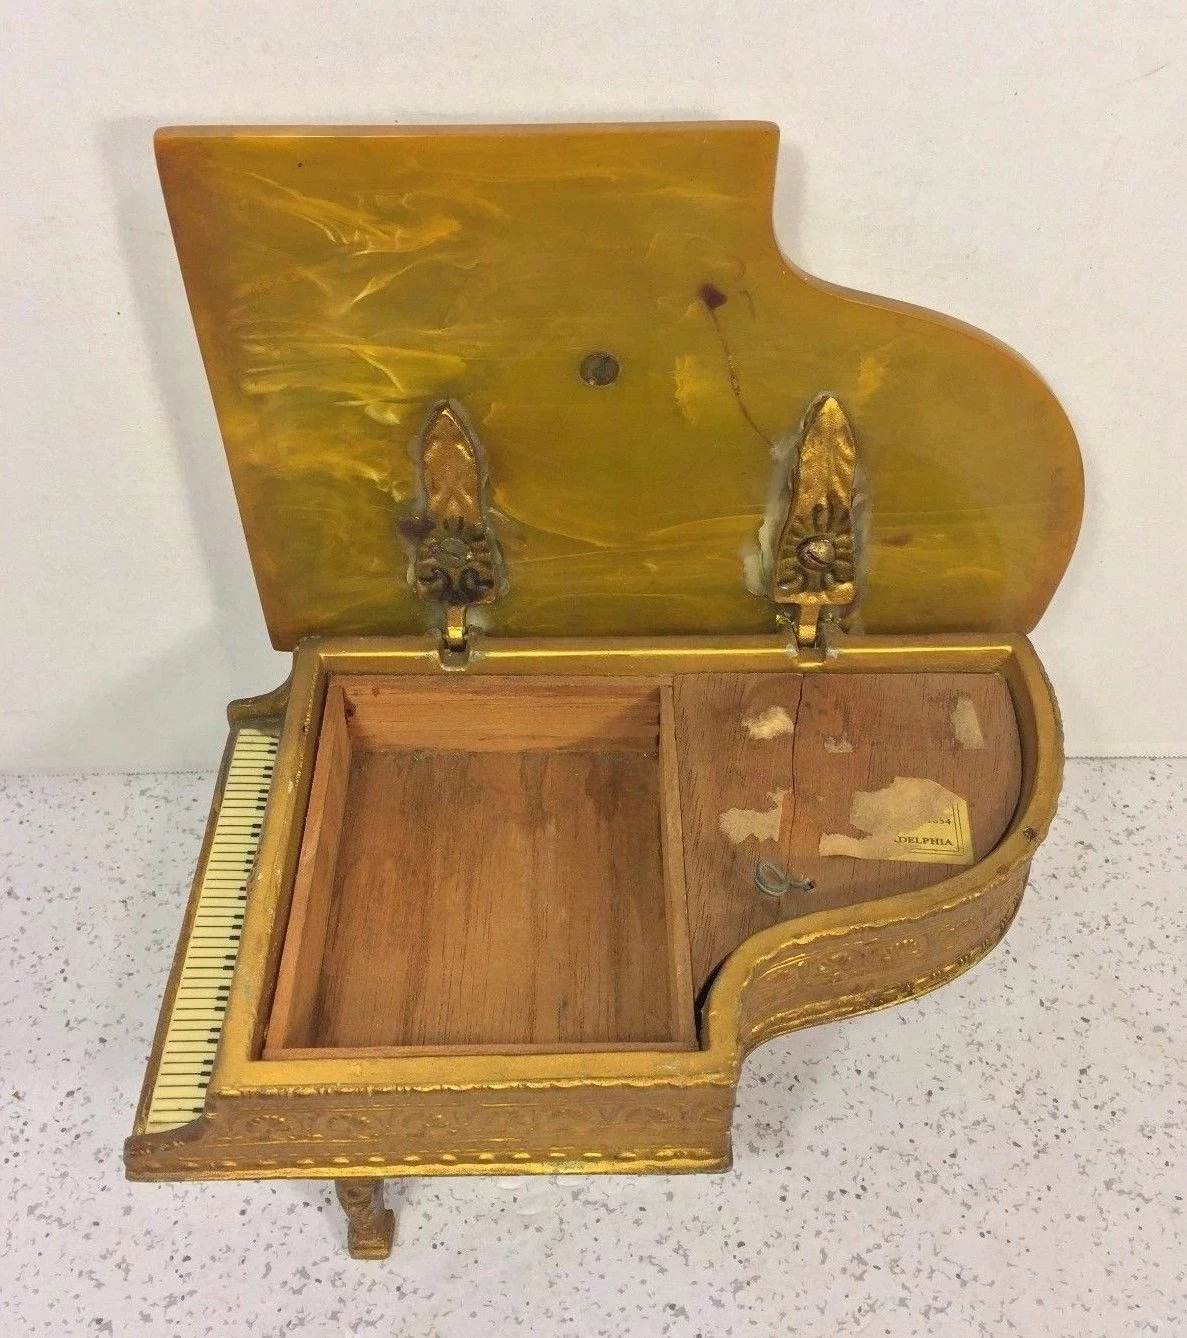 Vintage Grand Piano Music Box Thorens Swiss Gold Gilt